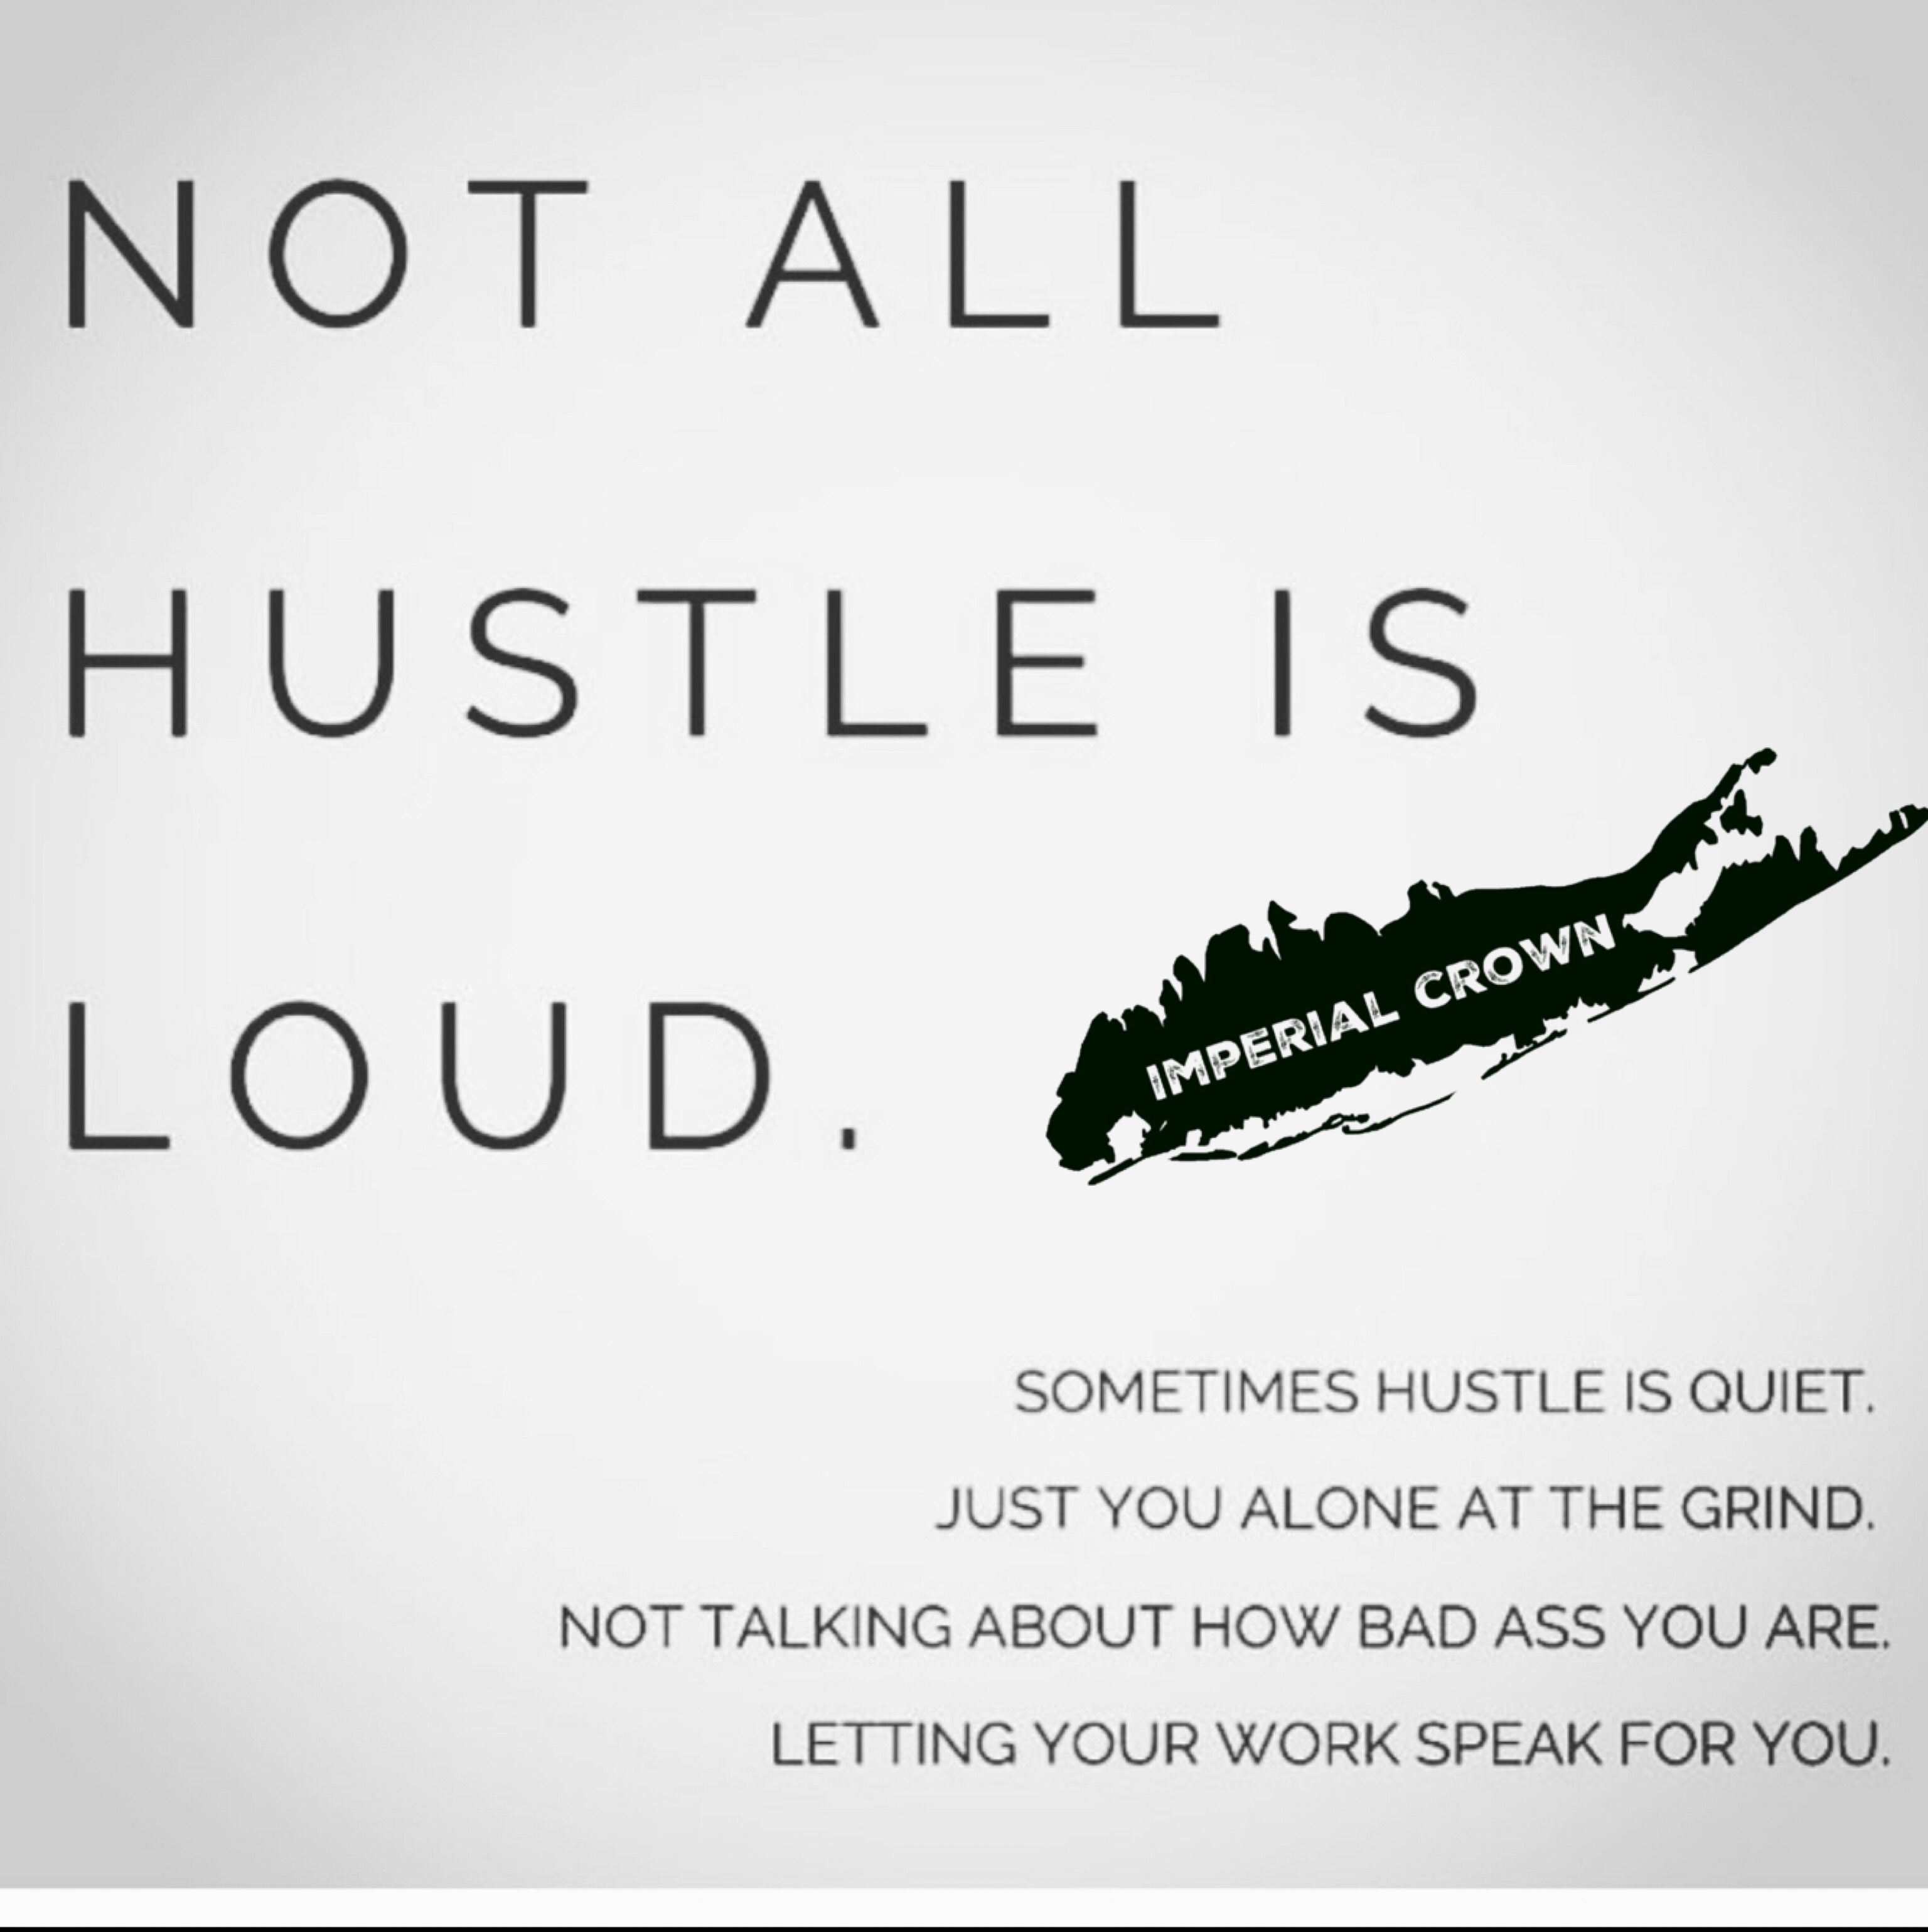 Not all hustle is loud sometimes hustle are quiet